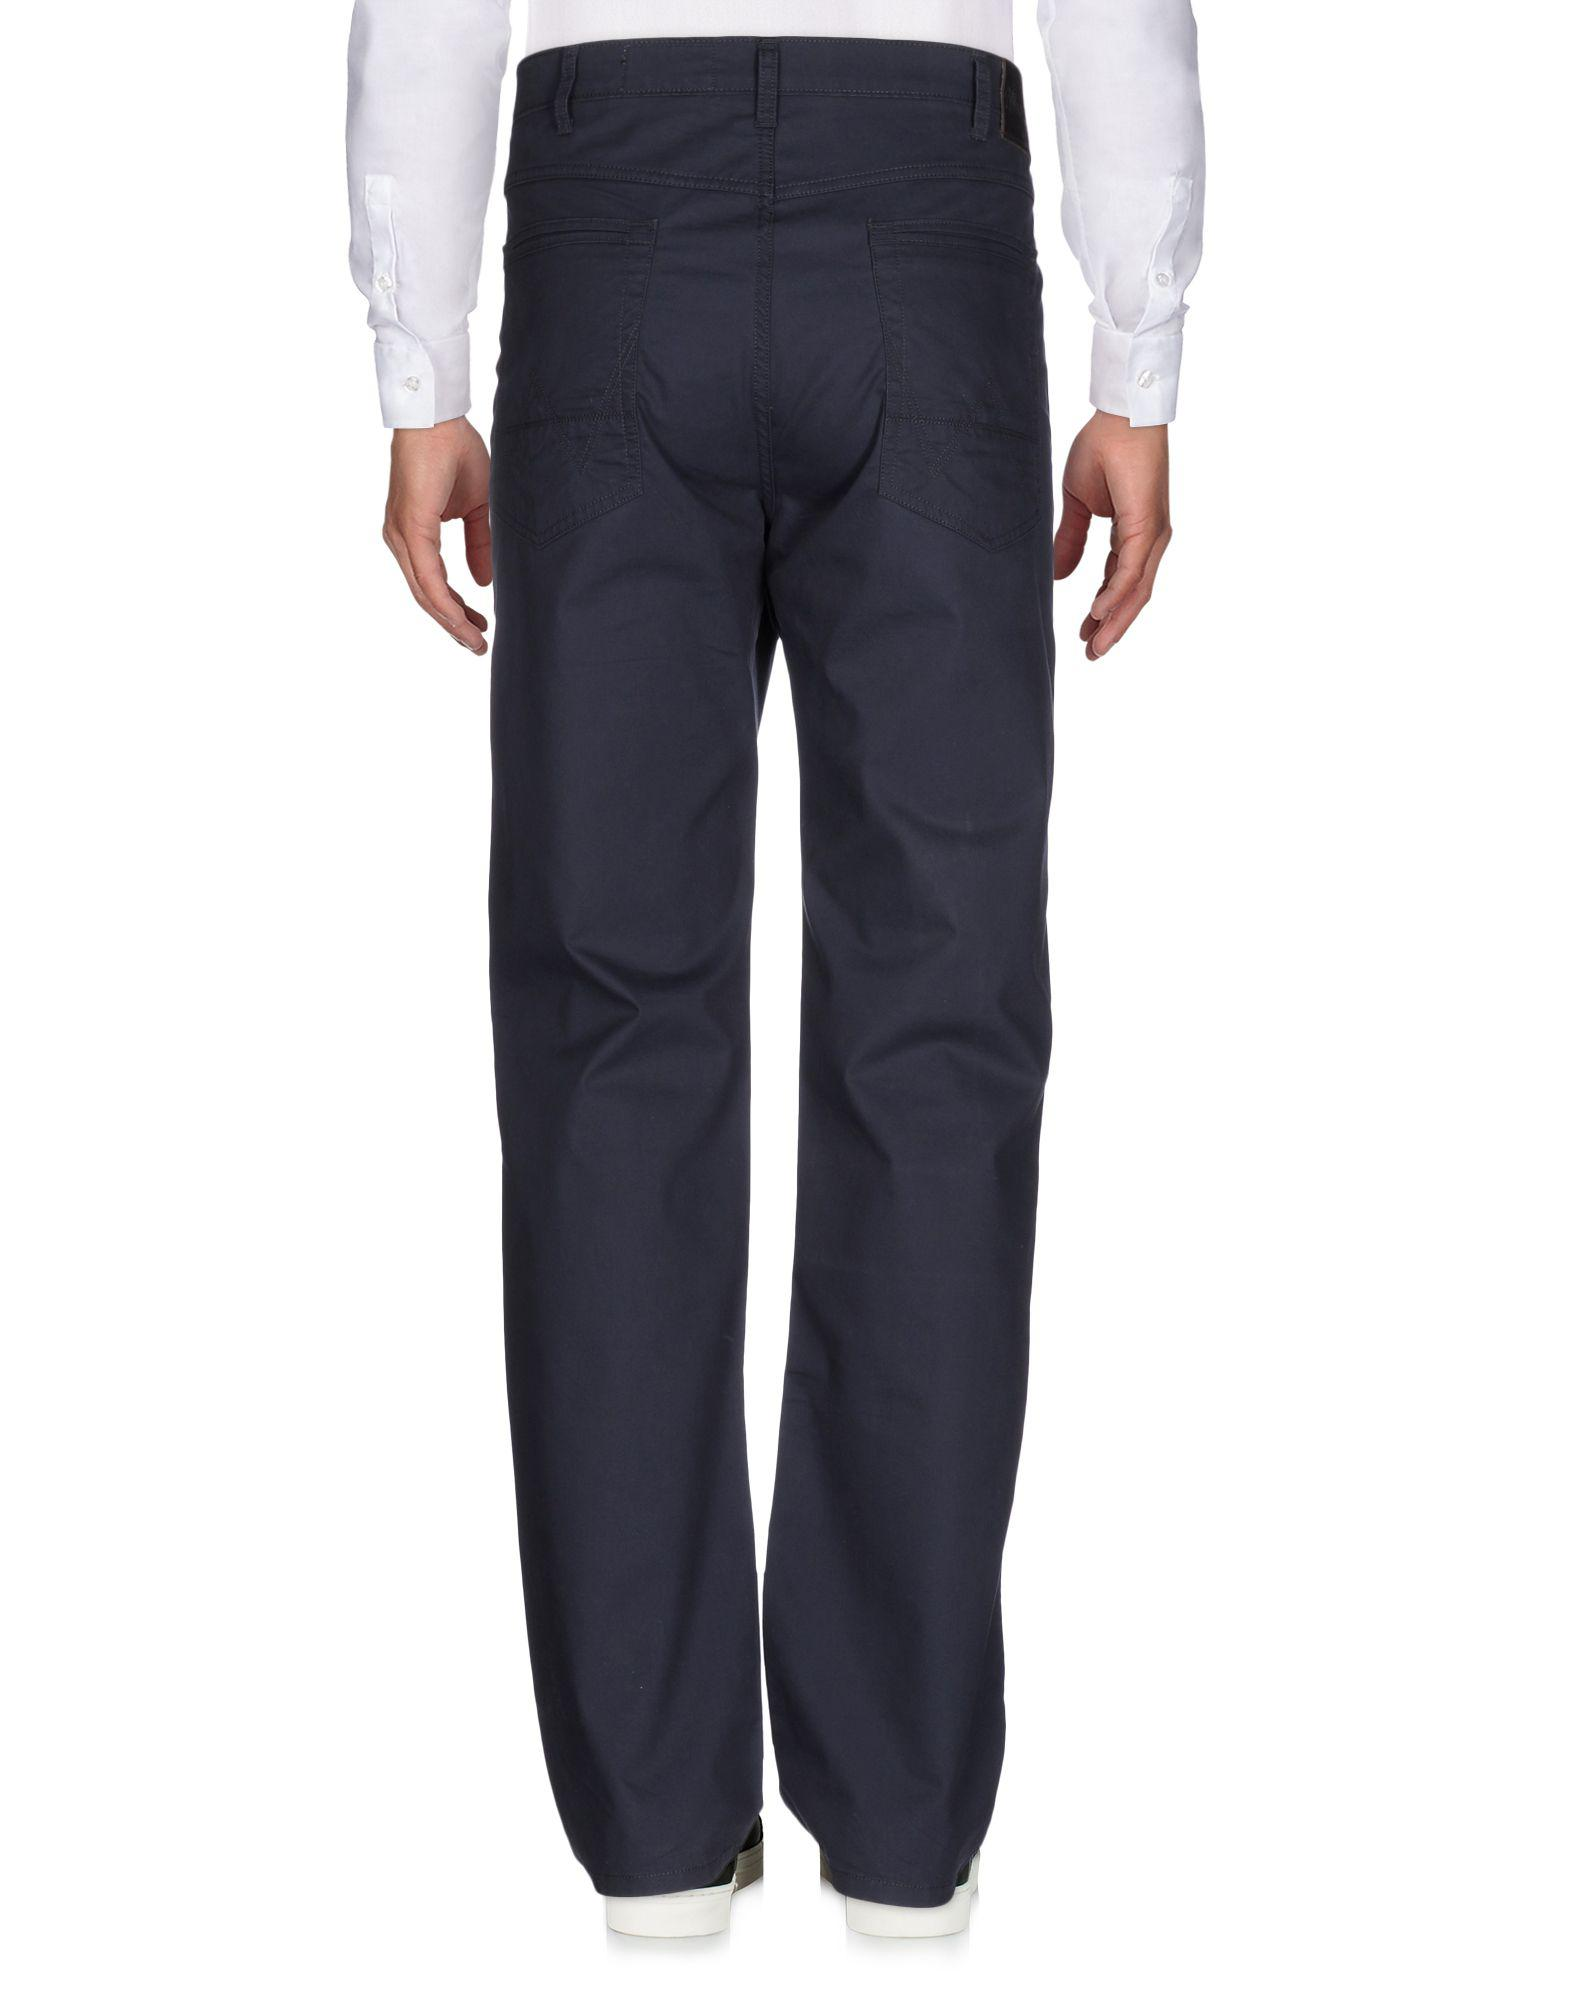 Wrangler Leather Casual Trouser in Dark Blue (Blue) for Men